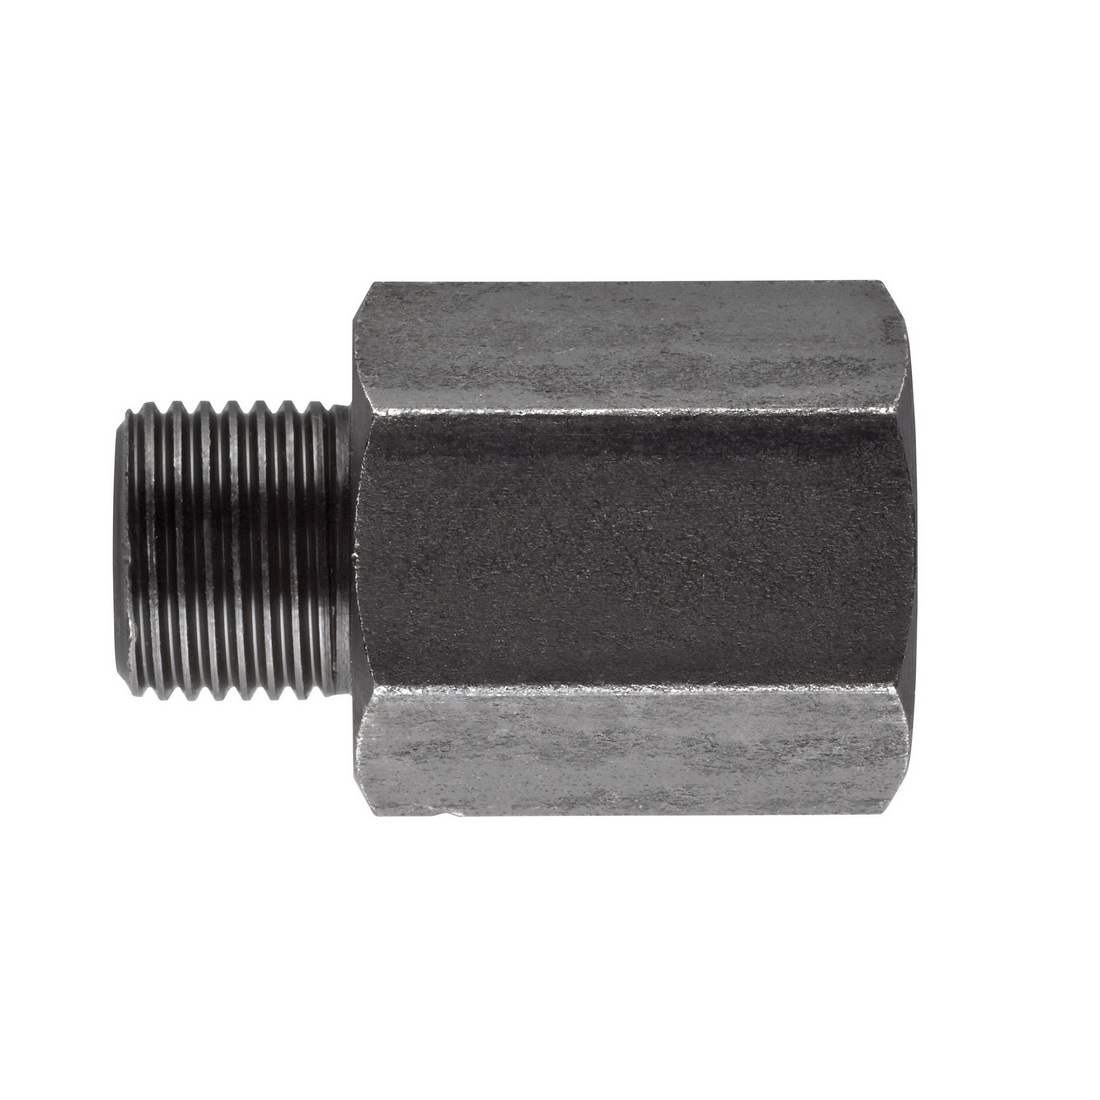 M14 Angle Grinder Adapter 32-64mm